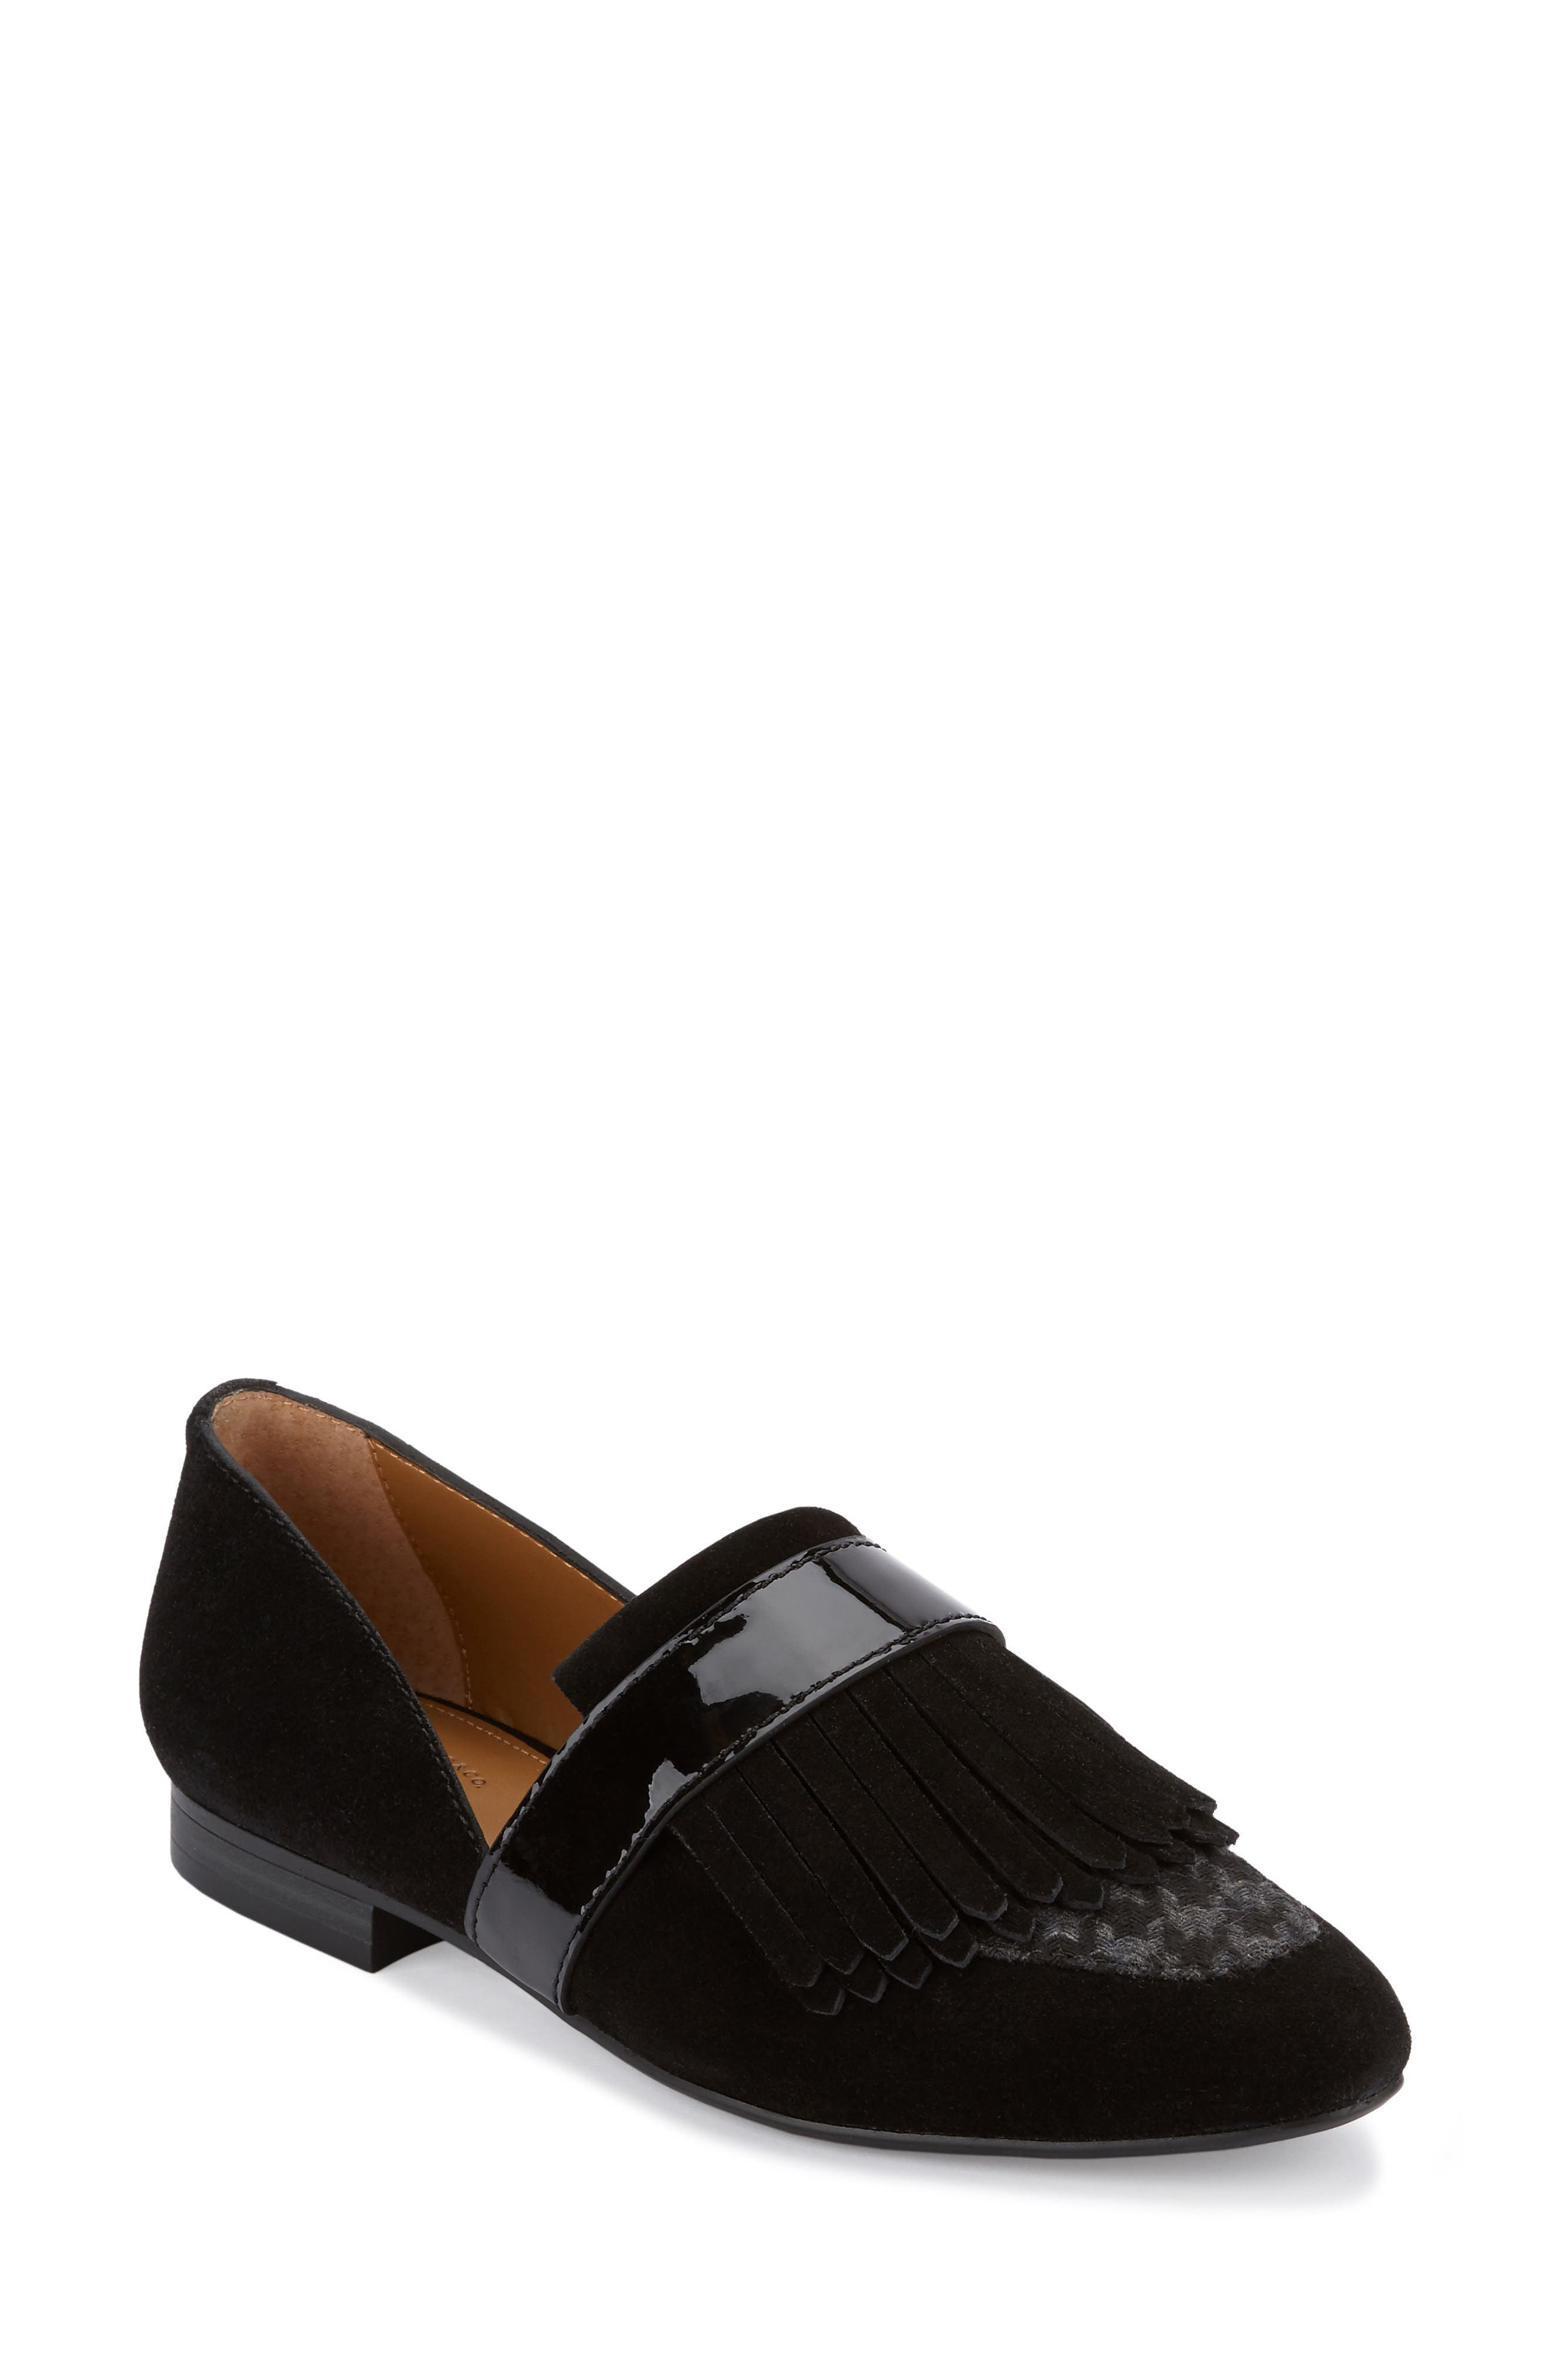 'Harlow' Kiltie Leather Loafer,                         Main,                         color, 002